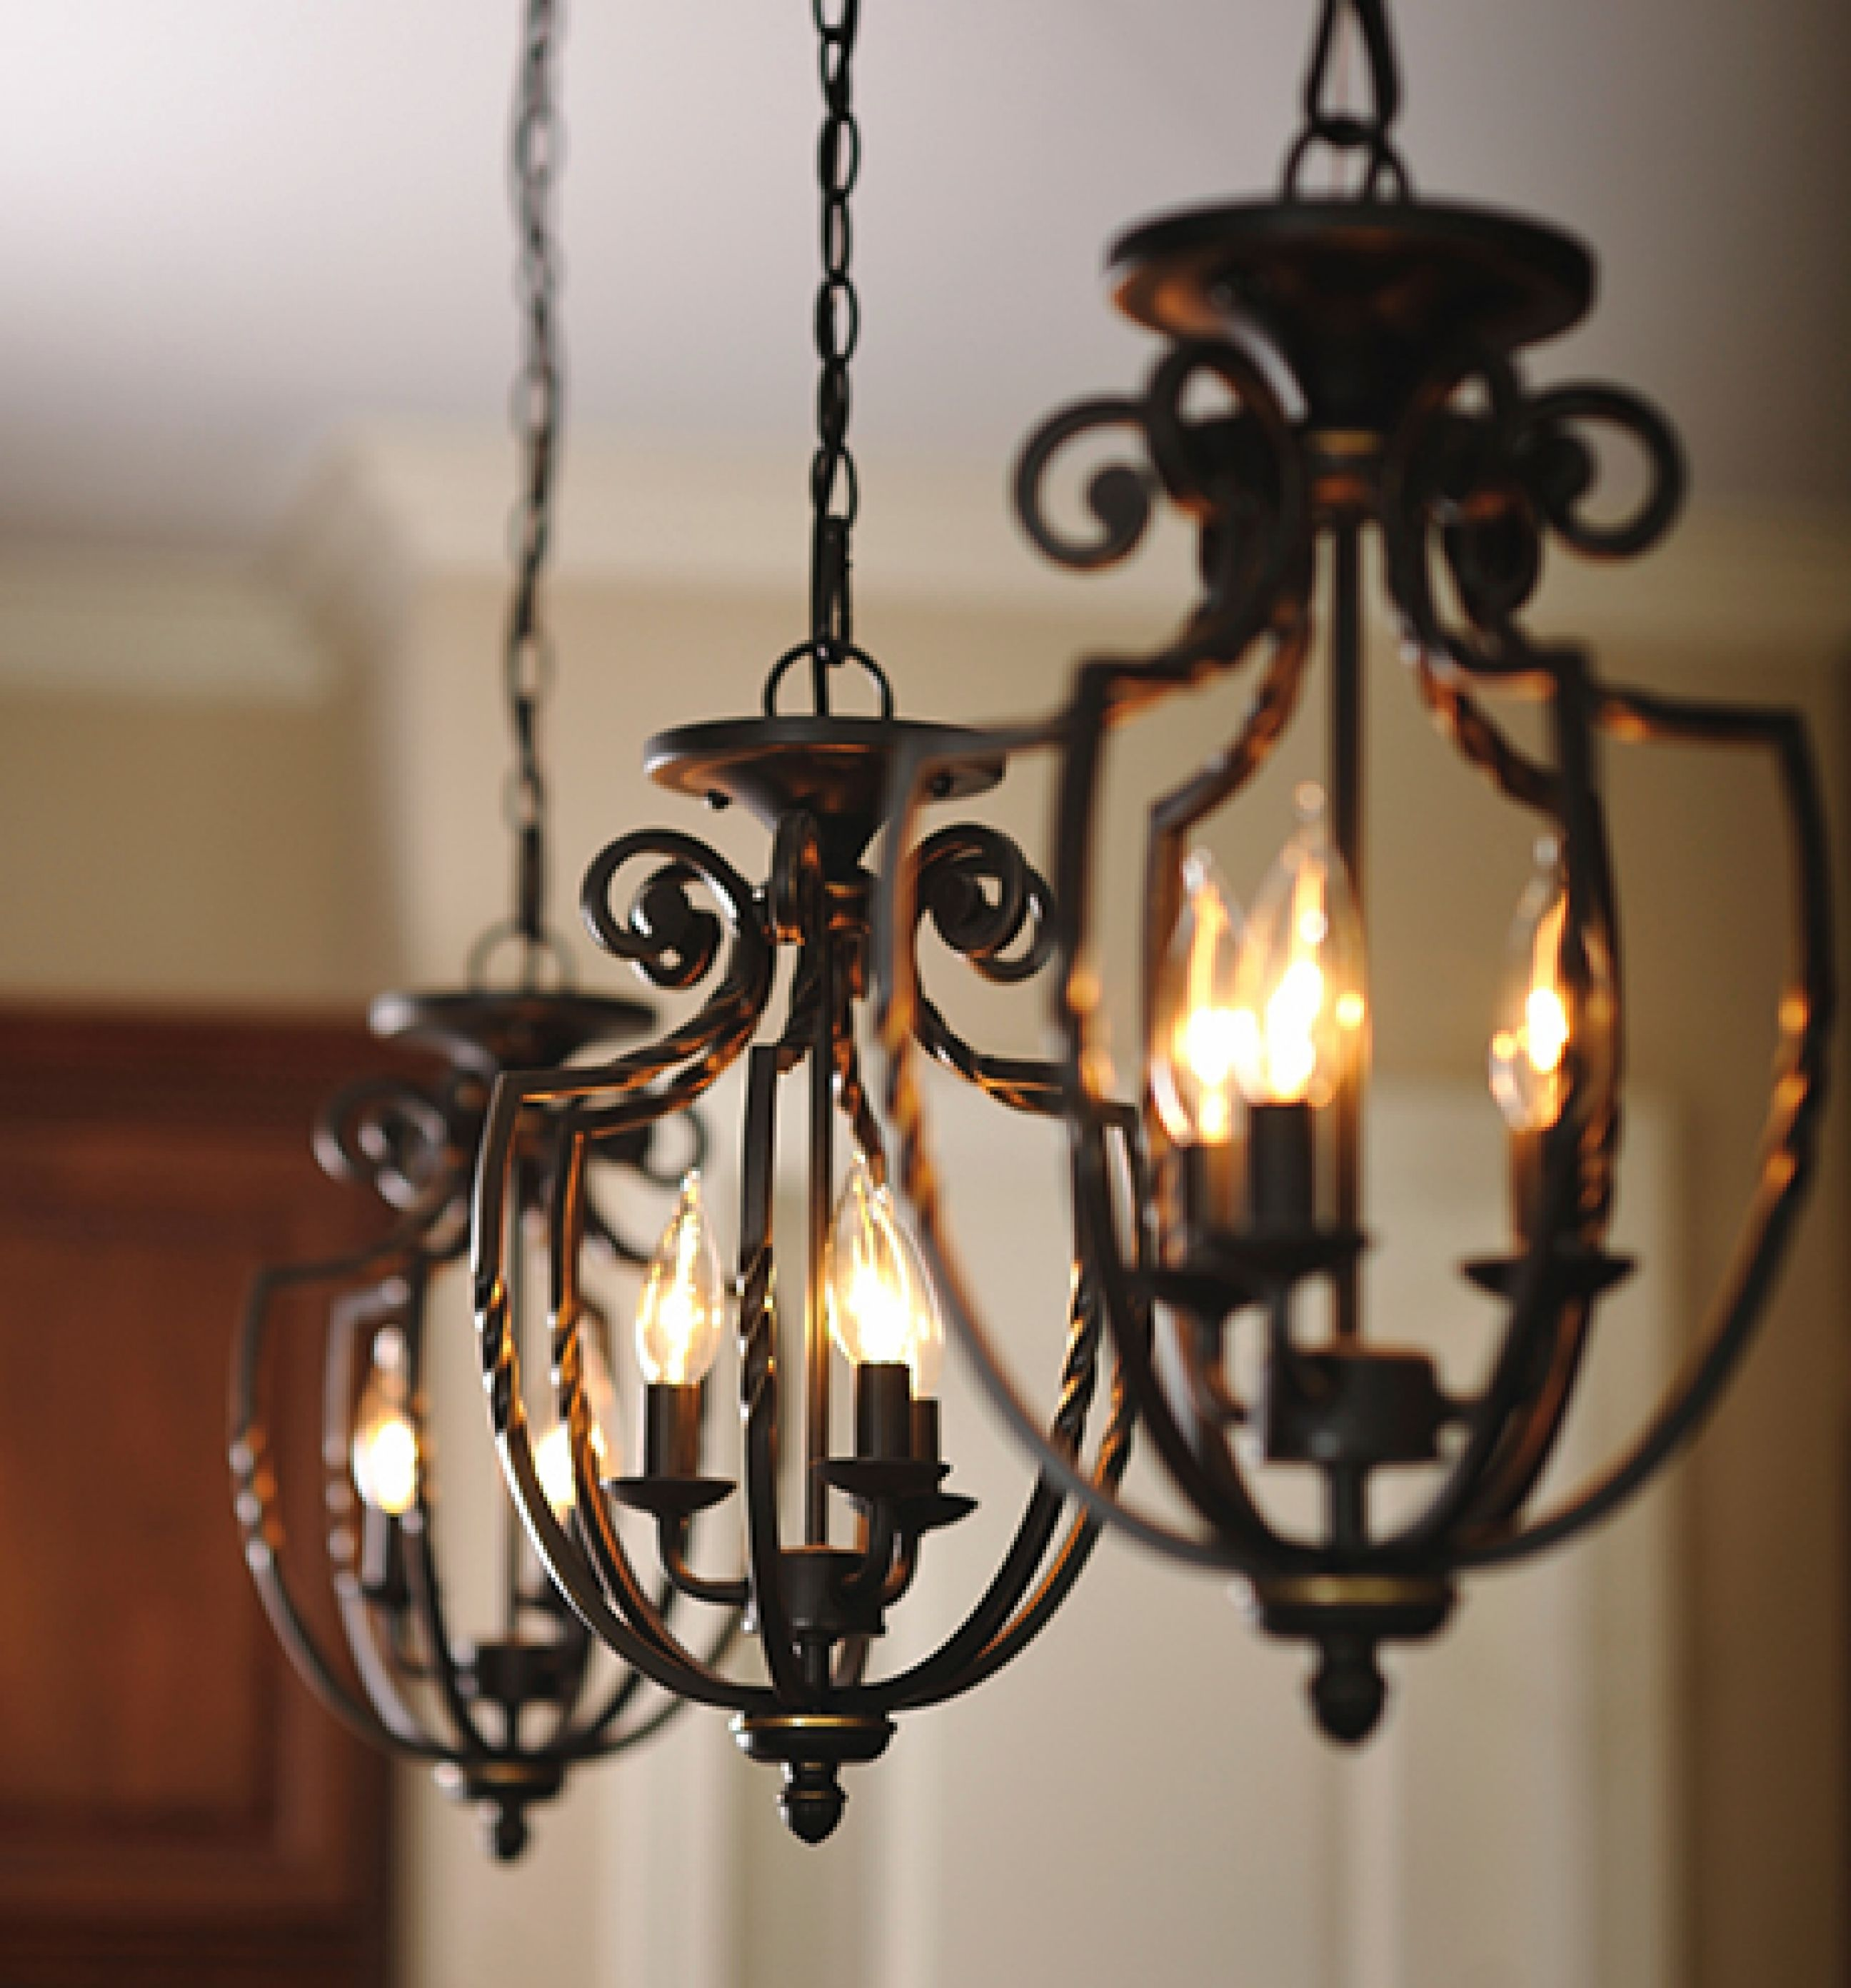 Iron gate fence services in pa black steel fence options in pa 35 lighting ideas and creative fixtures that inspire you to create the perfect ambience in your home arubaitofo Image collections